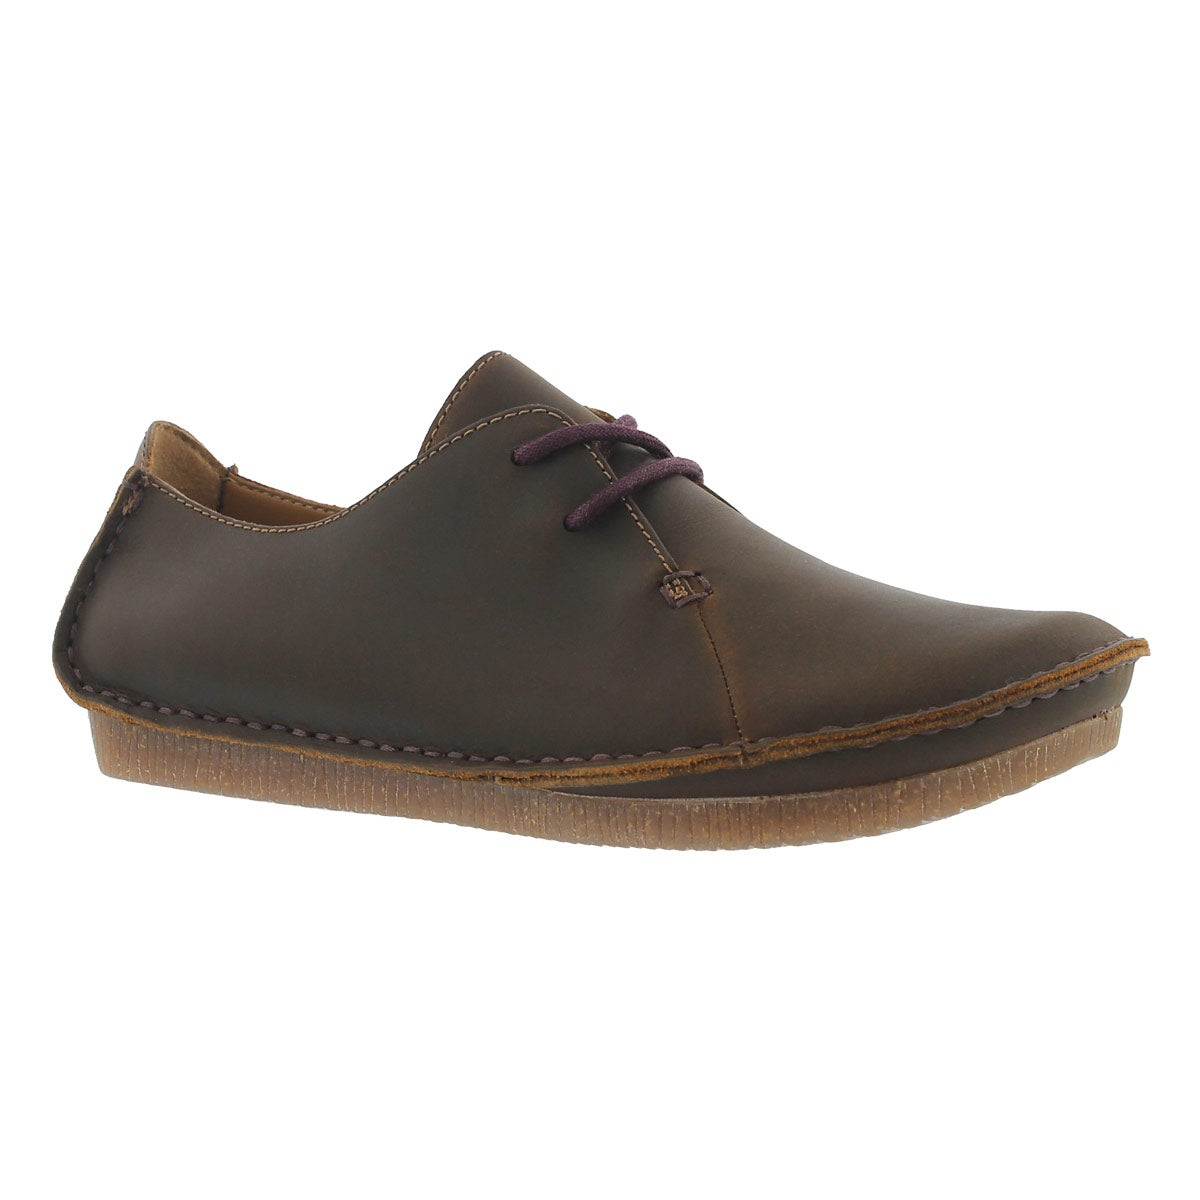 Women's JANEY MAE beeswax casual oxfords